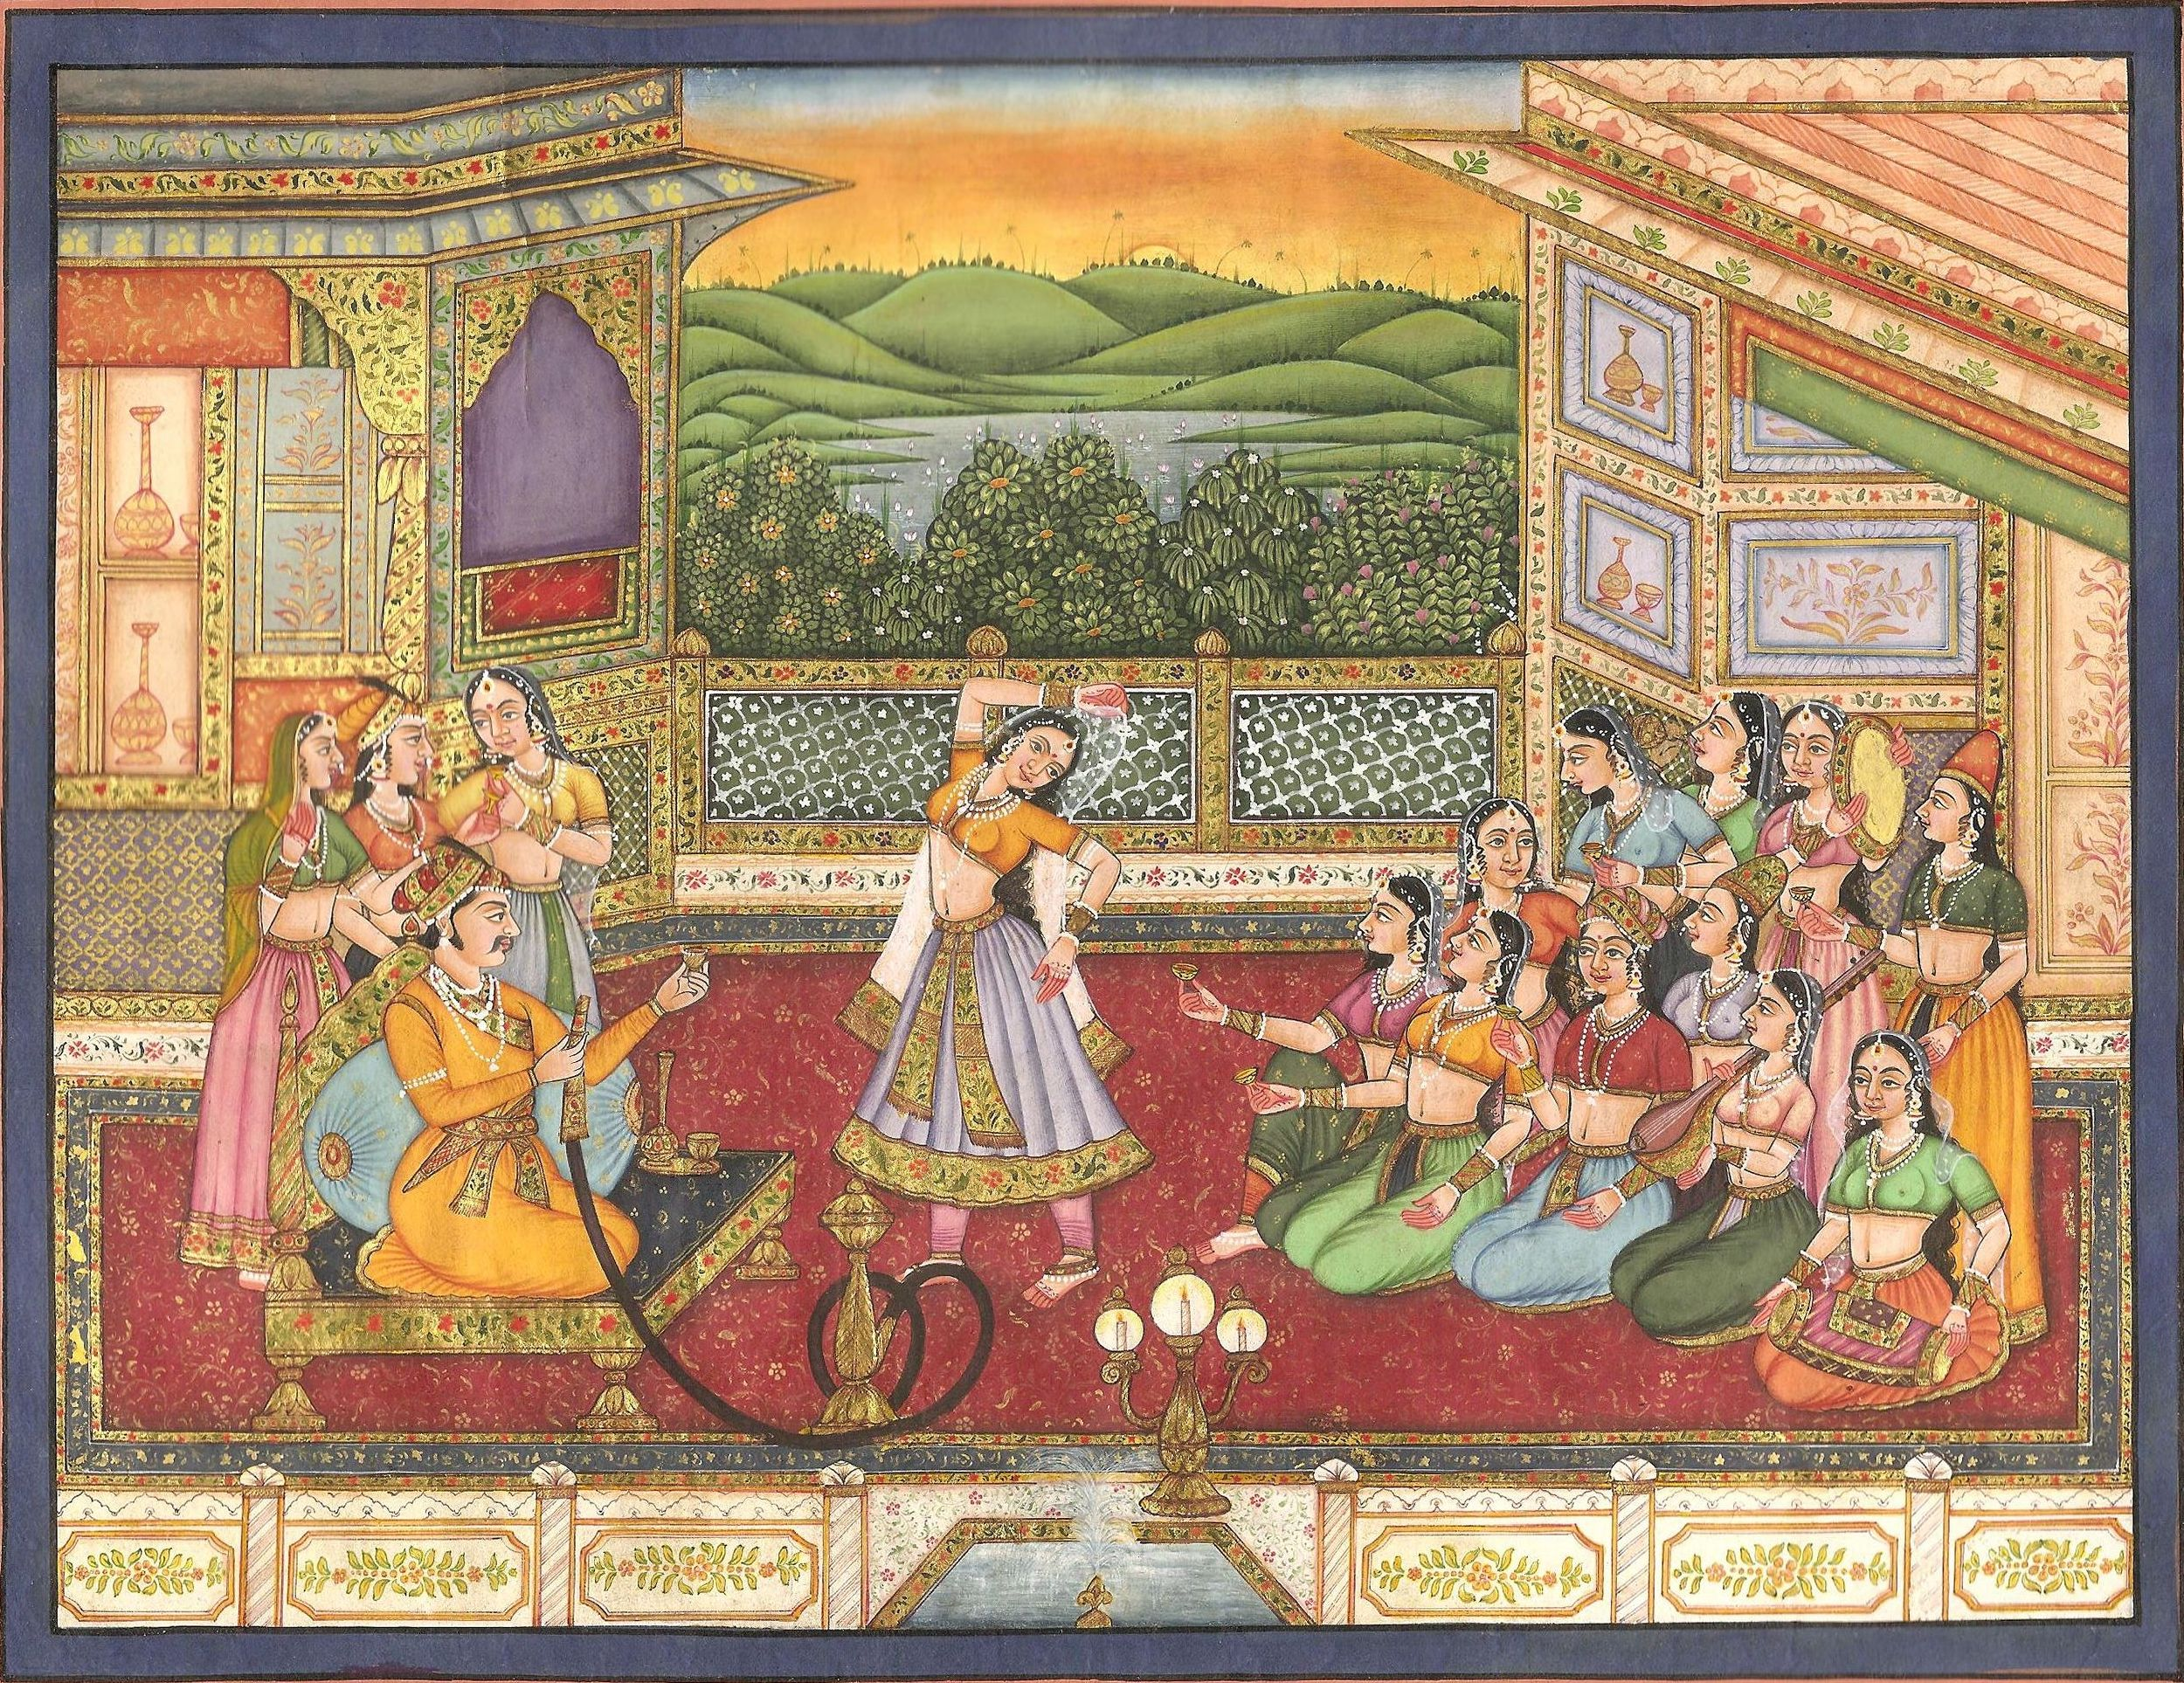 The miniature painting art form is famed across the world but in the Asian subcontinent art historians consider Rajasthan to be one of its cultural centres. Historians believe the Mughals […]